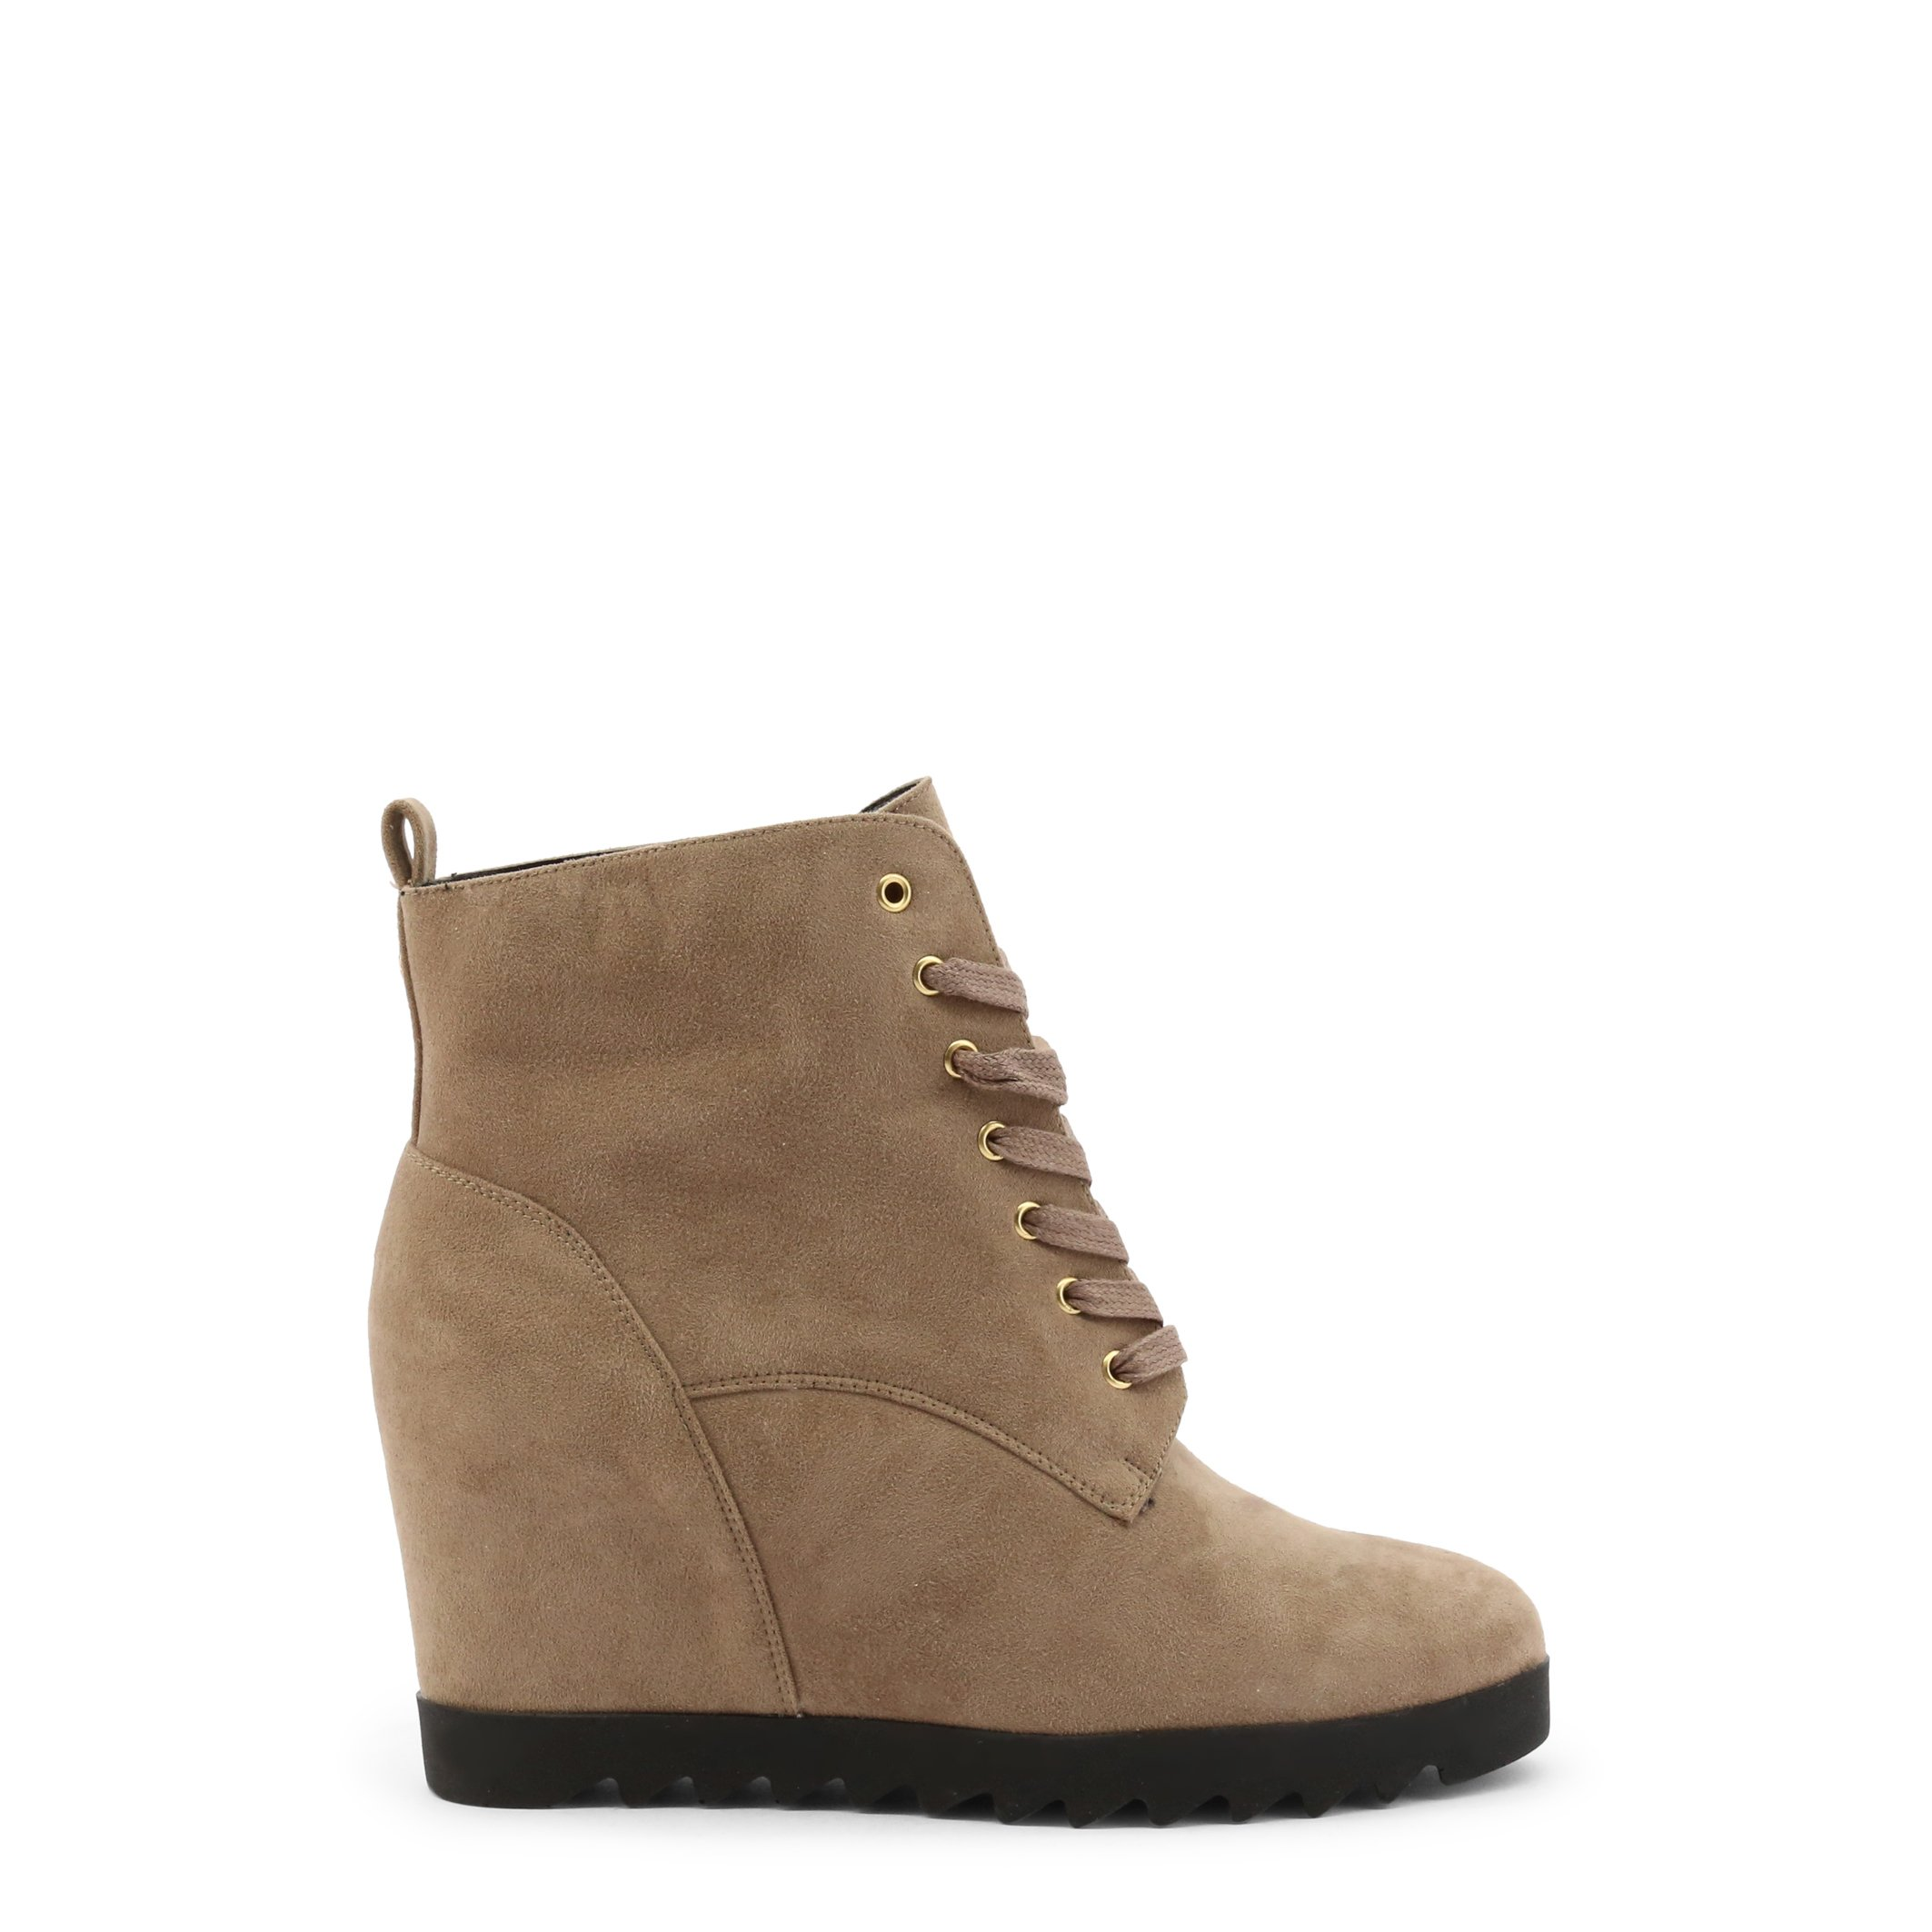 Roccobarocco Women's Ankle Boot Various Colours RBSC0CP01CAM - brown-1 EU 39